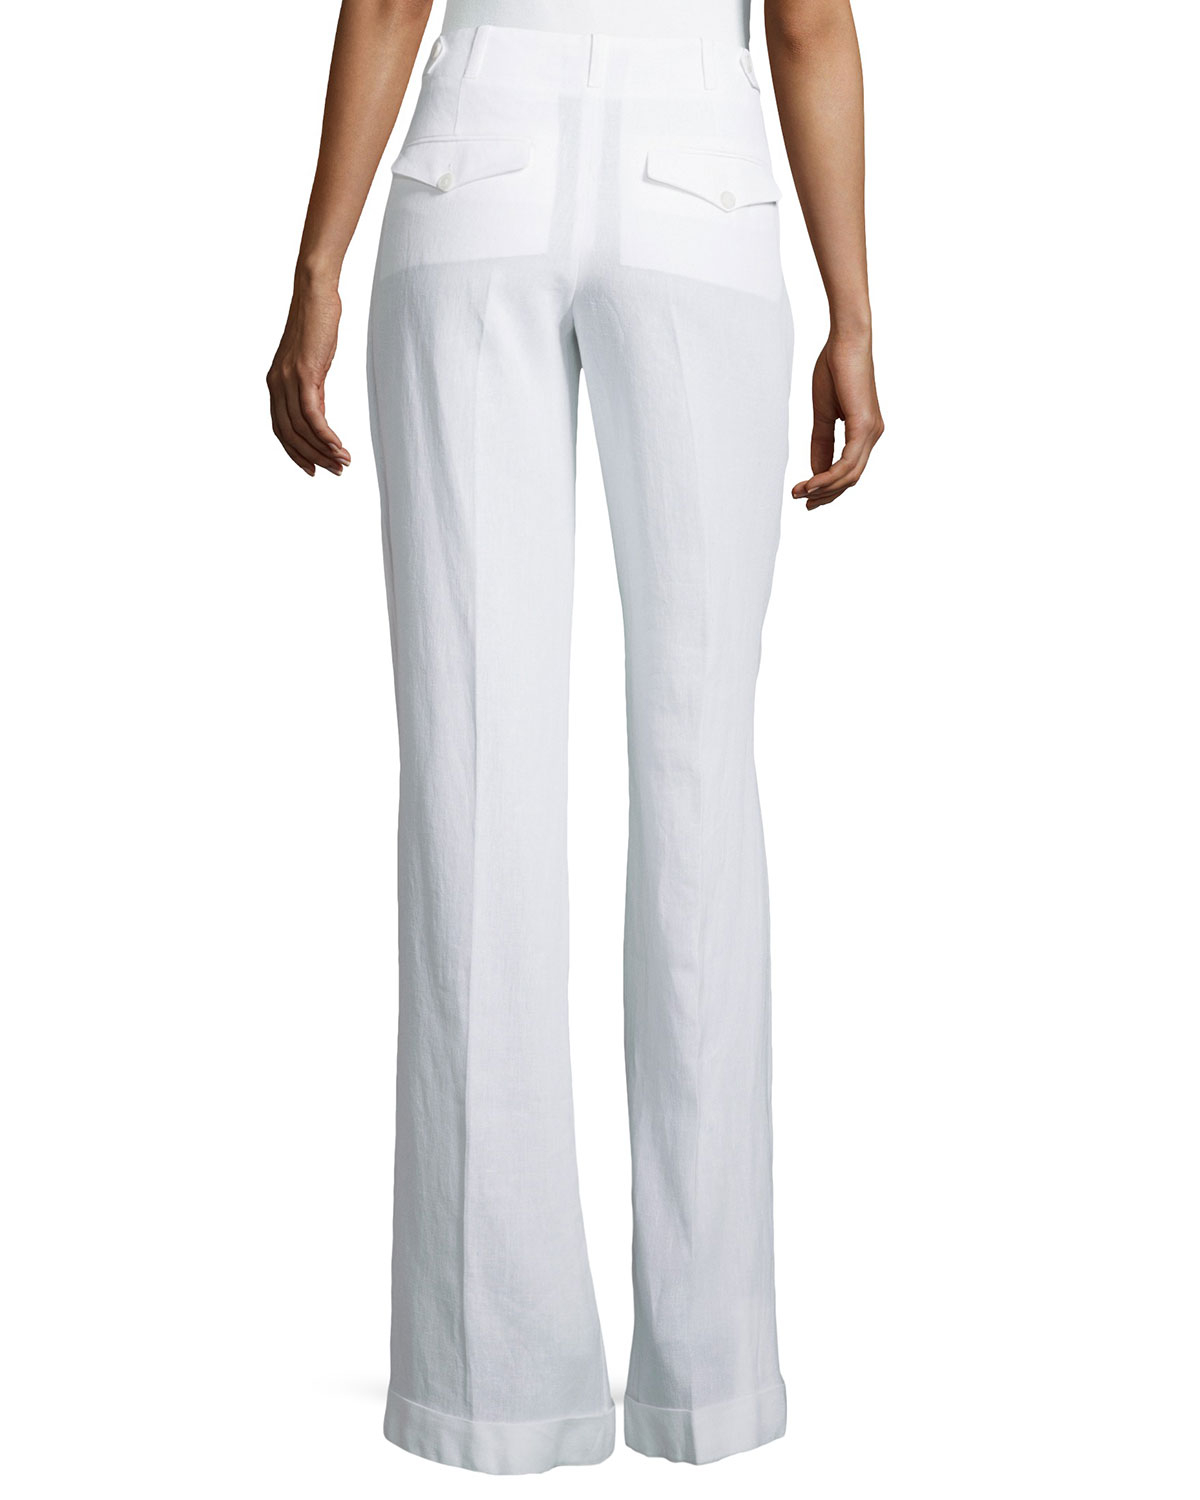 Michael kors Pleated & Cuffed Wide Leg Pants in White | Lyst